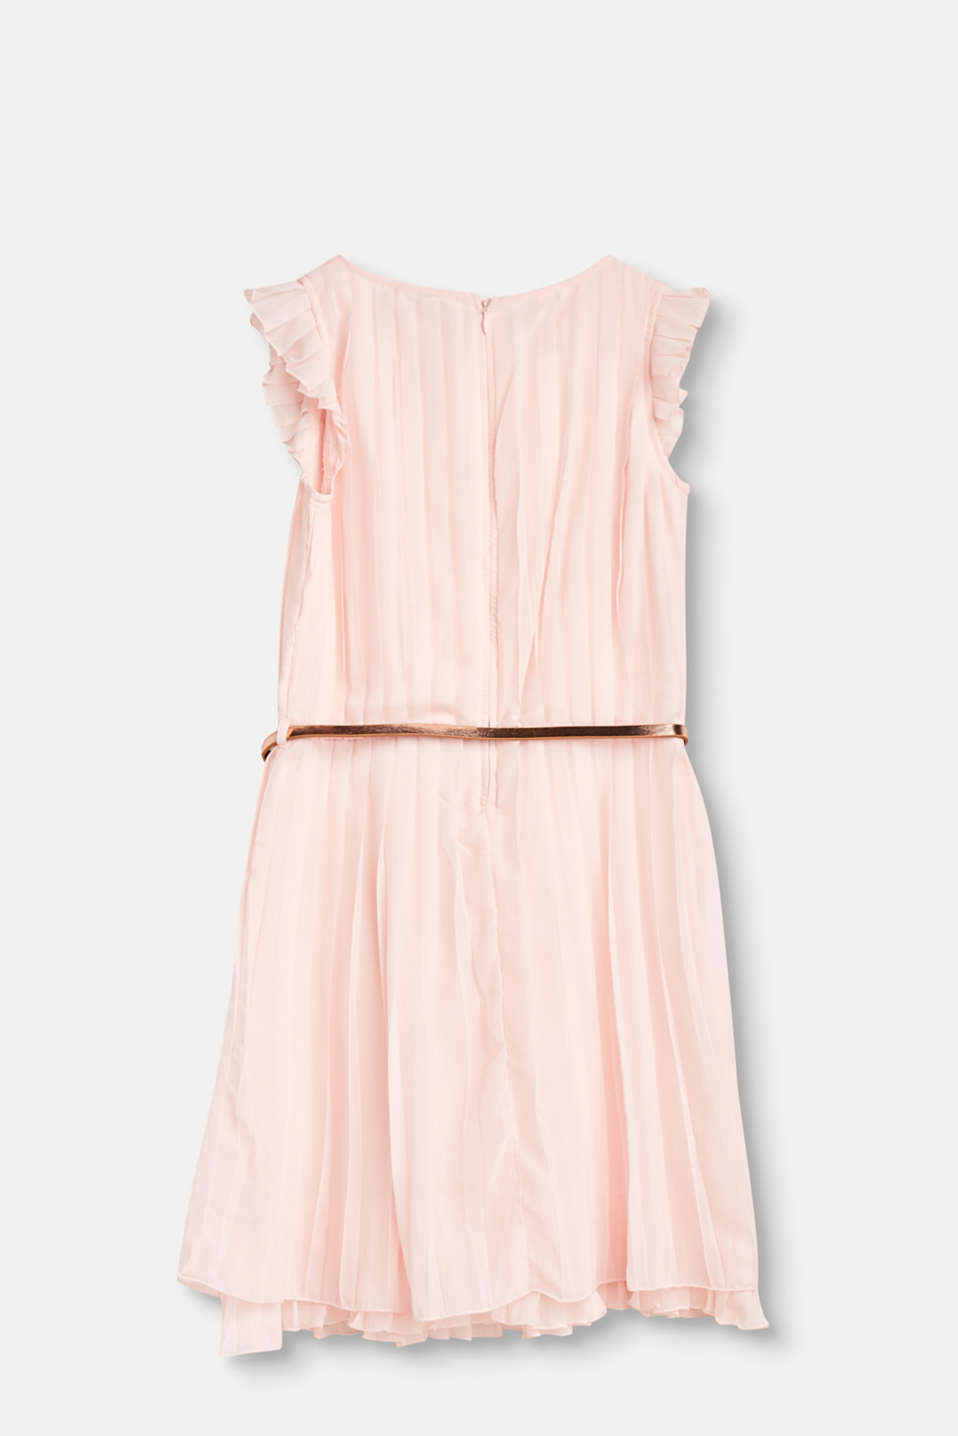 Pleated dress with a metallic belt in a girlish design